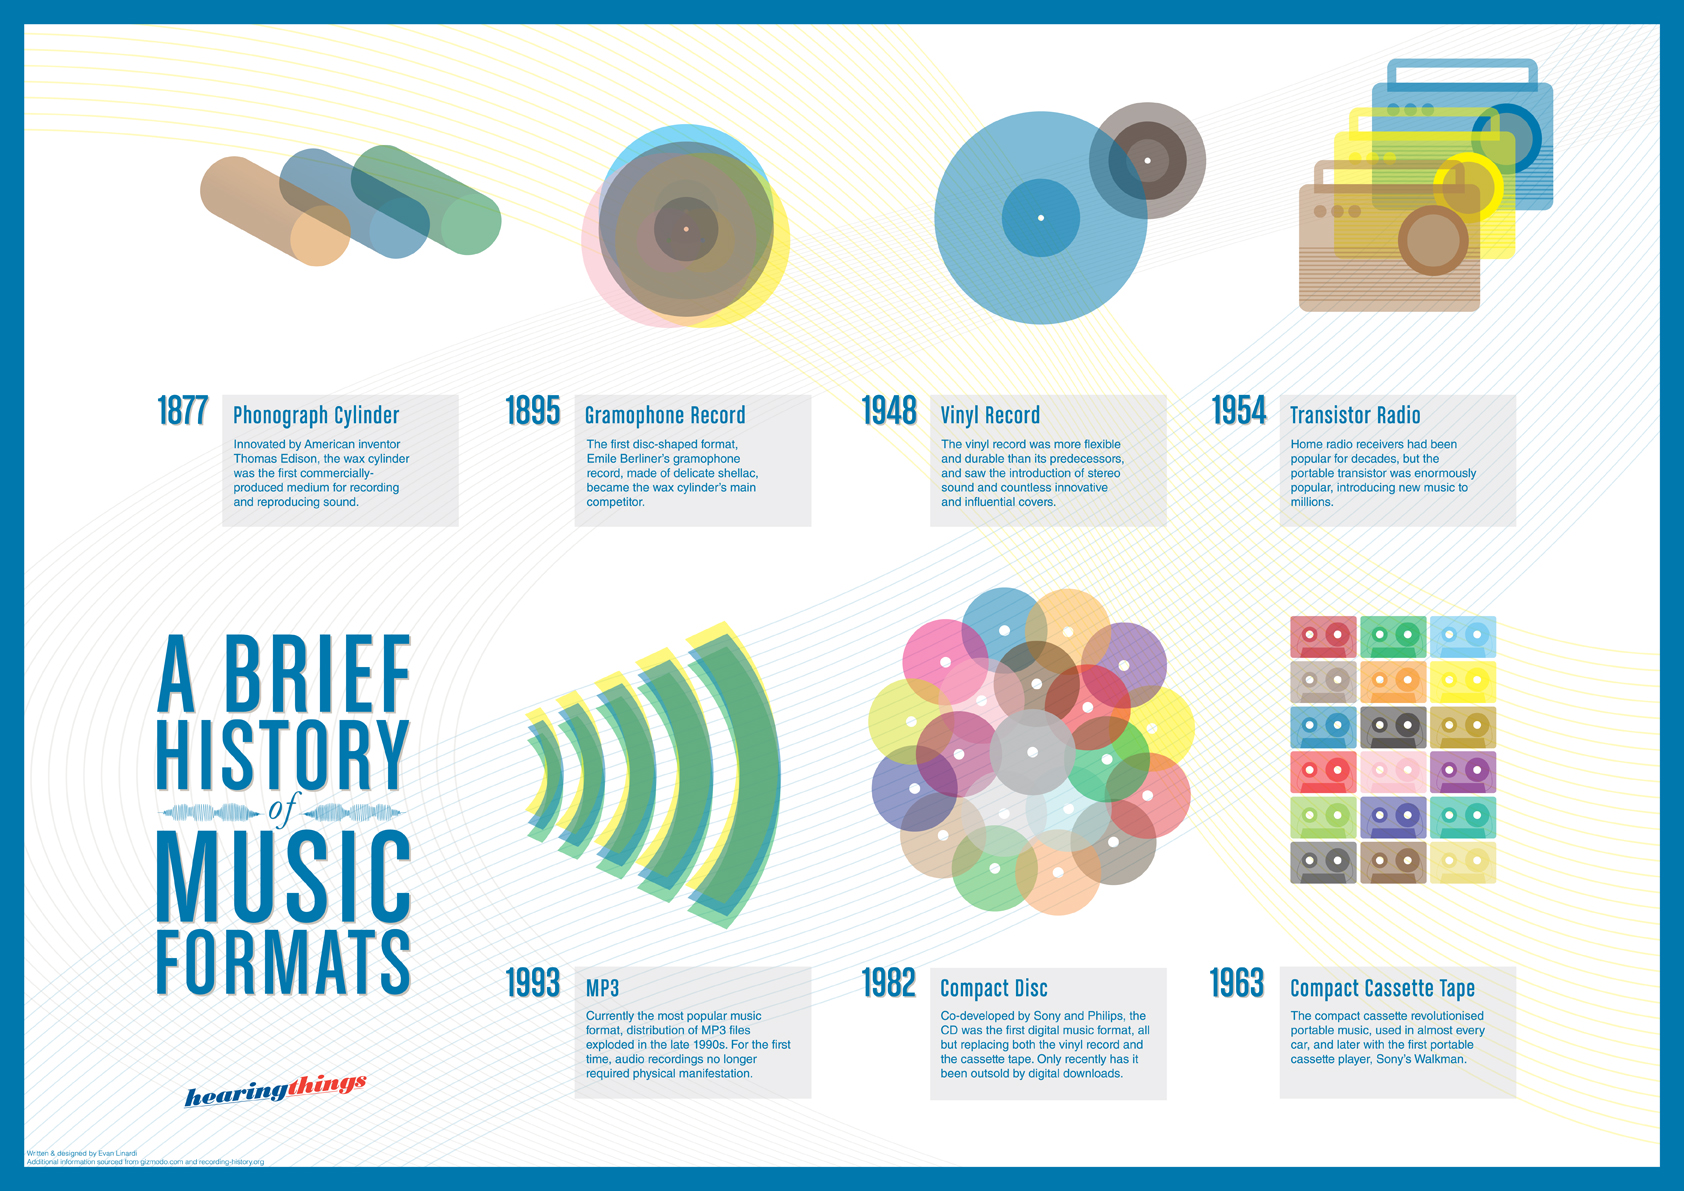 a-brief-history-of-music-formats_51938582c2cc8.jpg